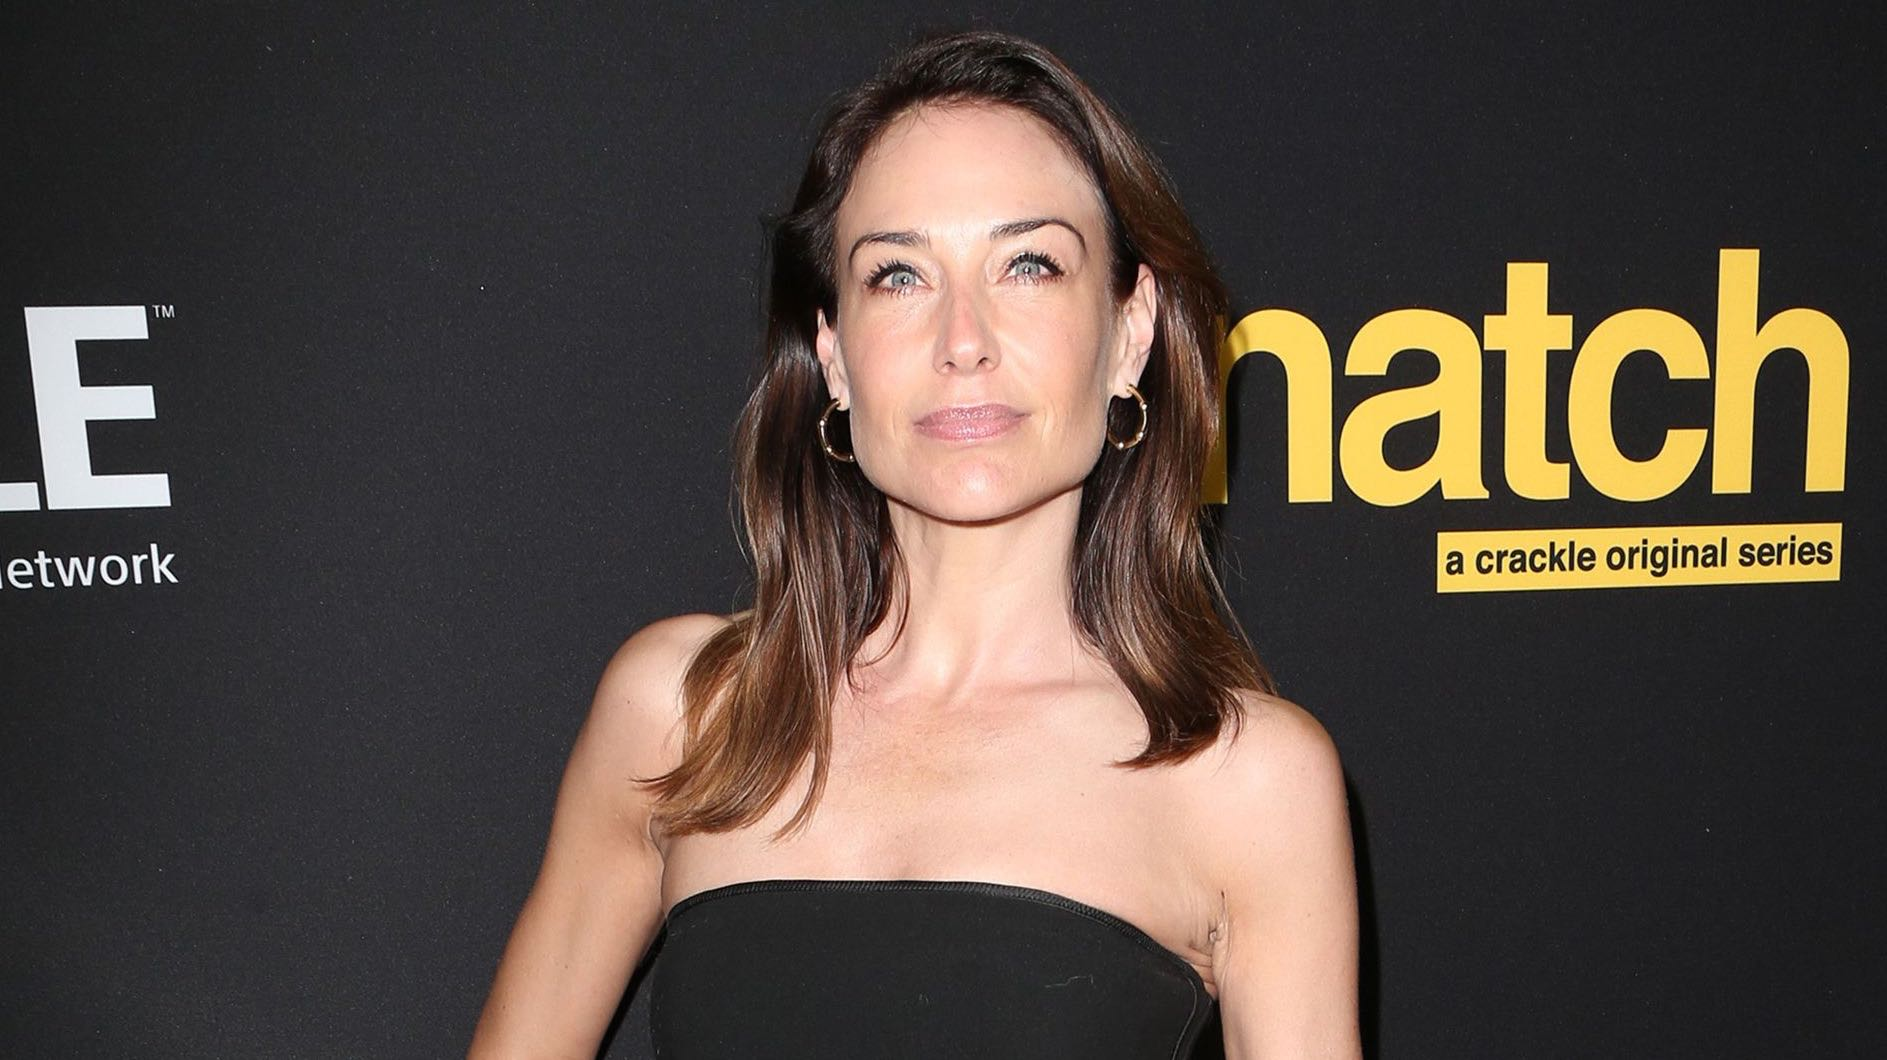 .@ClaireAForlani 'ducked' and 'dived' to escape Harvey Weinstein https://t.co/1yk6wqqSzE https://t.co/kZW8uwt0Xe